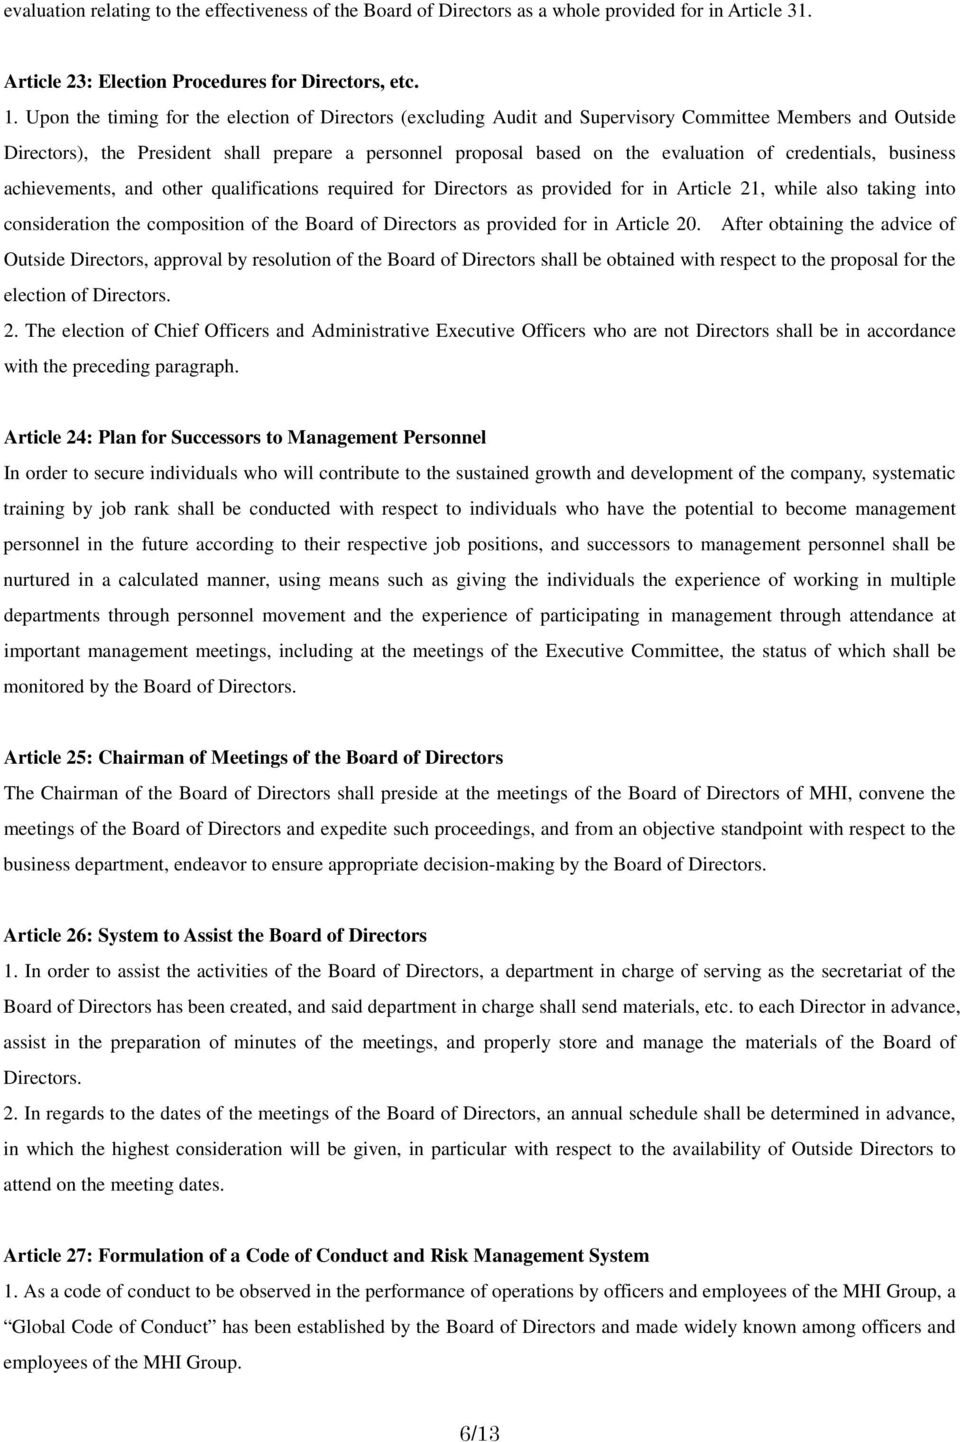 credentials, business achievements, and other qualifications required for Directors as provided for in Article 21, while also taking into consideration the composition of the Board of Directors as